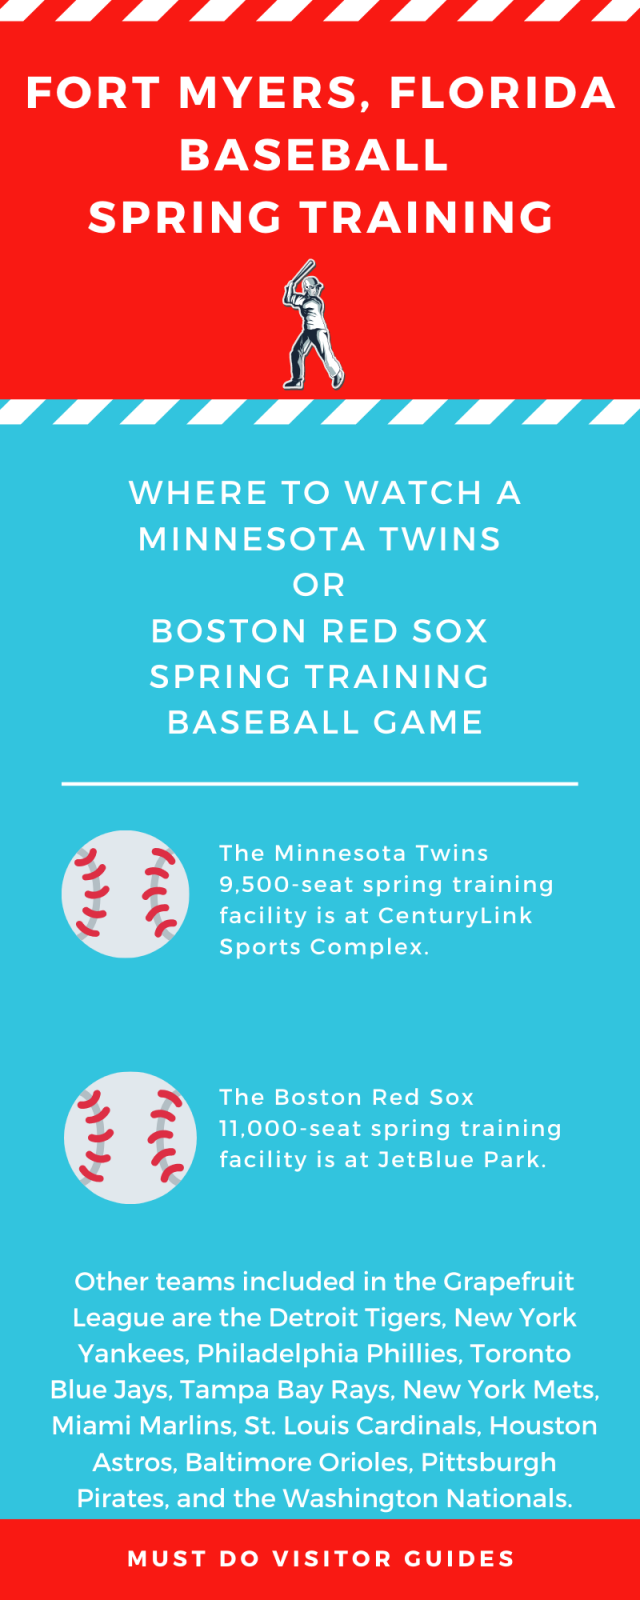 Fort Myers, Florida Baseball Spring Training. Here's where to watch a MLB Minnesota Twins or Boston Red Sox spring training baseball game infographic. Must Do Visitor Guides | MustDo.com